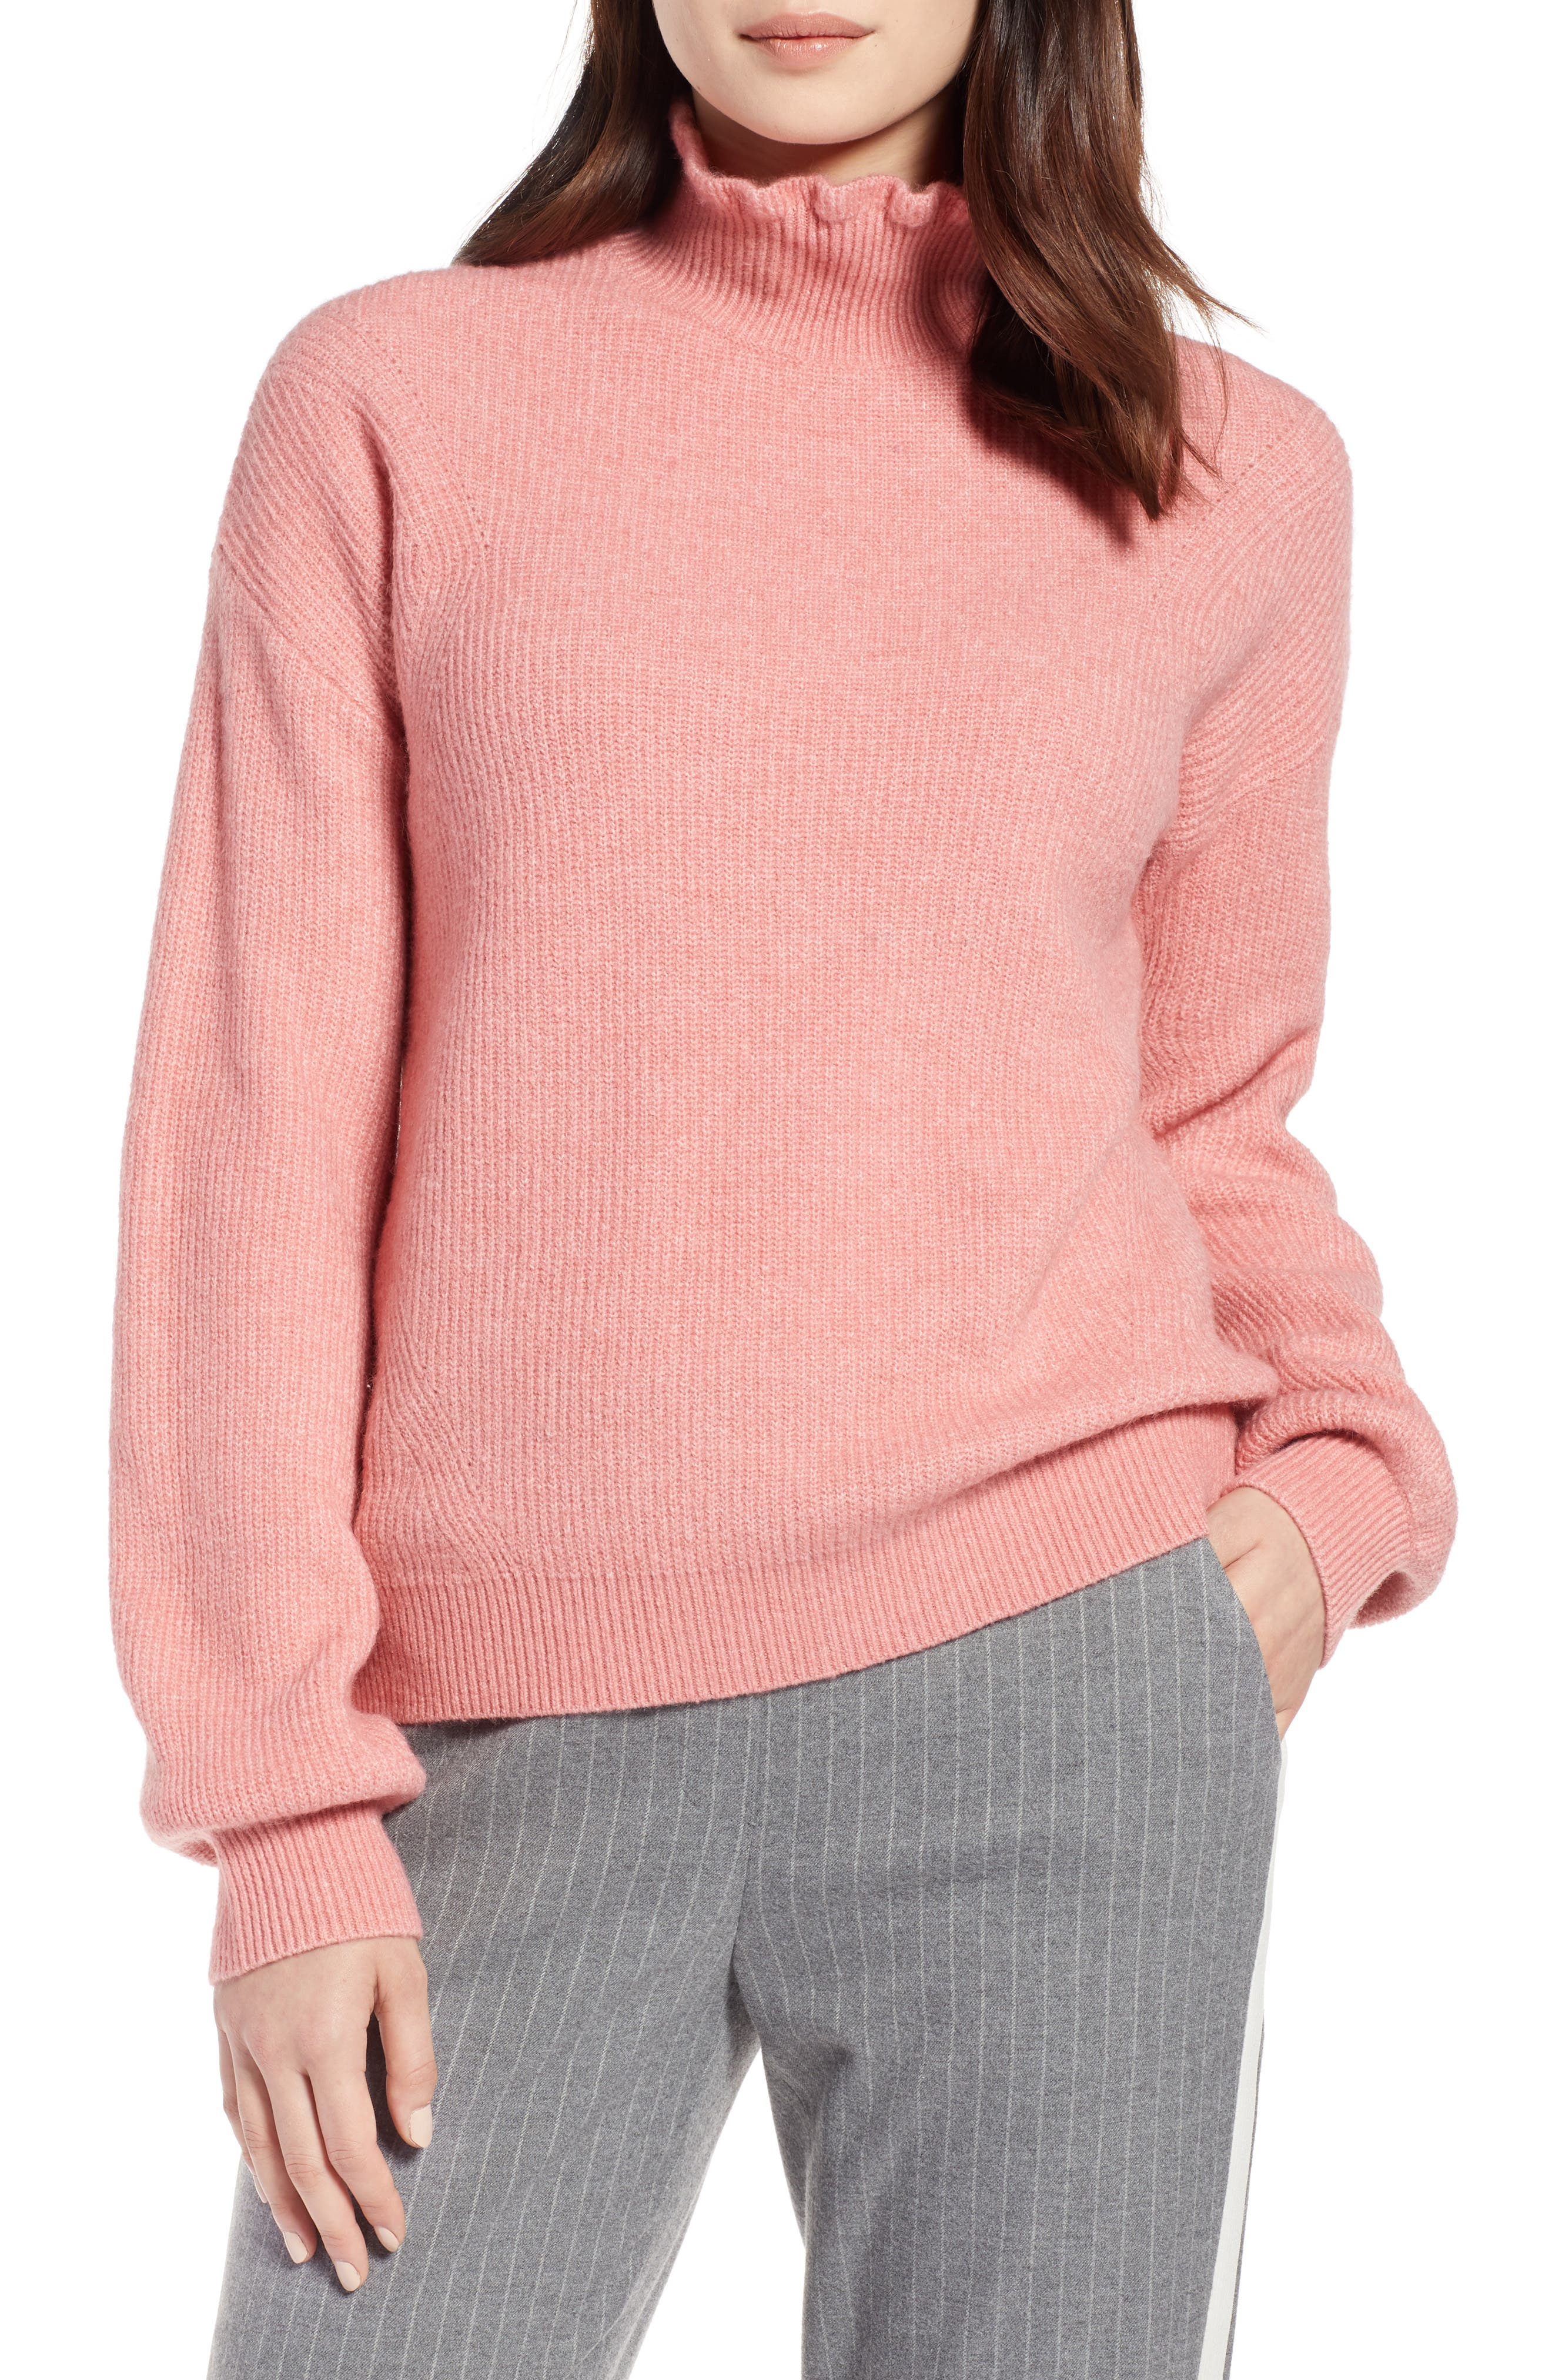 Ruffle Neck Sweater,                             Main thumbnail 1, color,                             PINK APRICOT